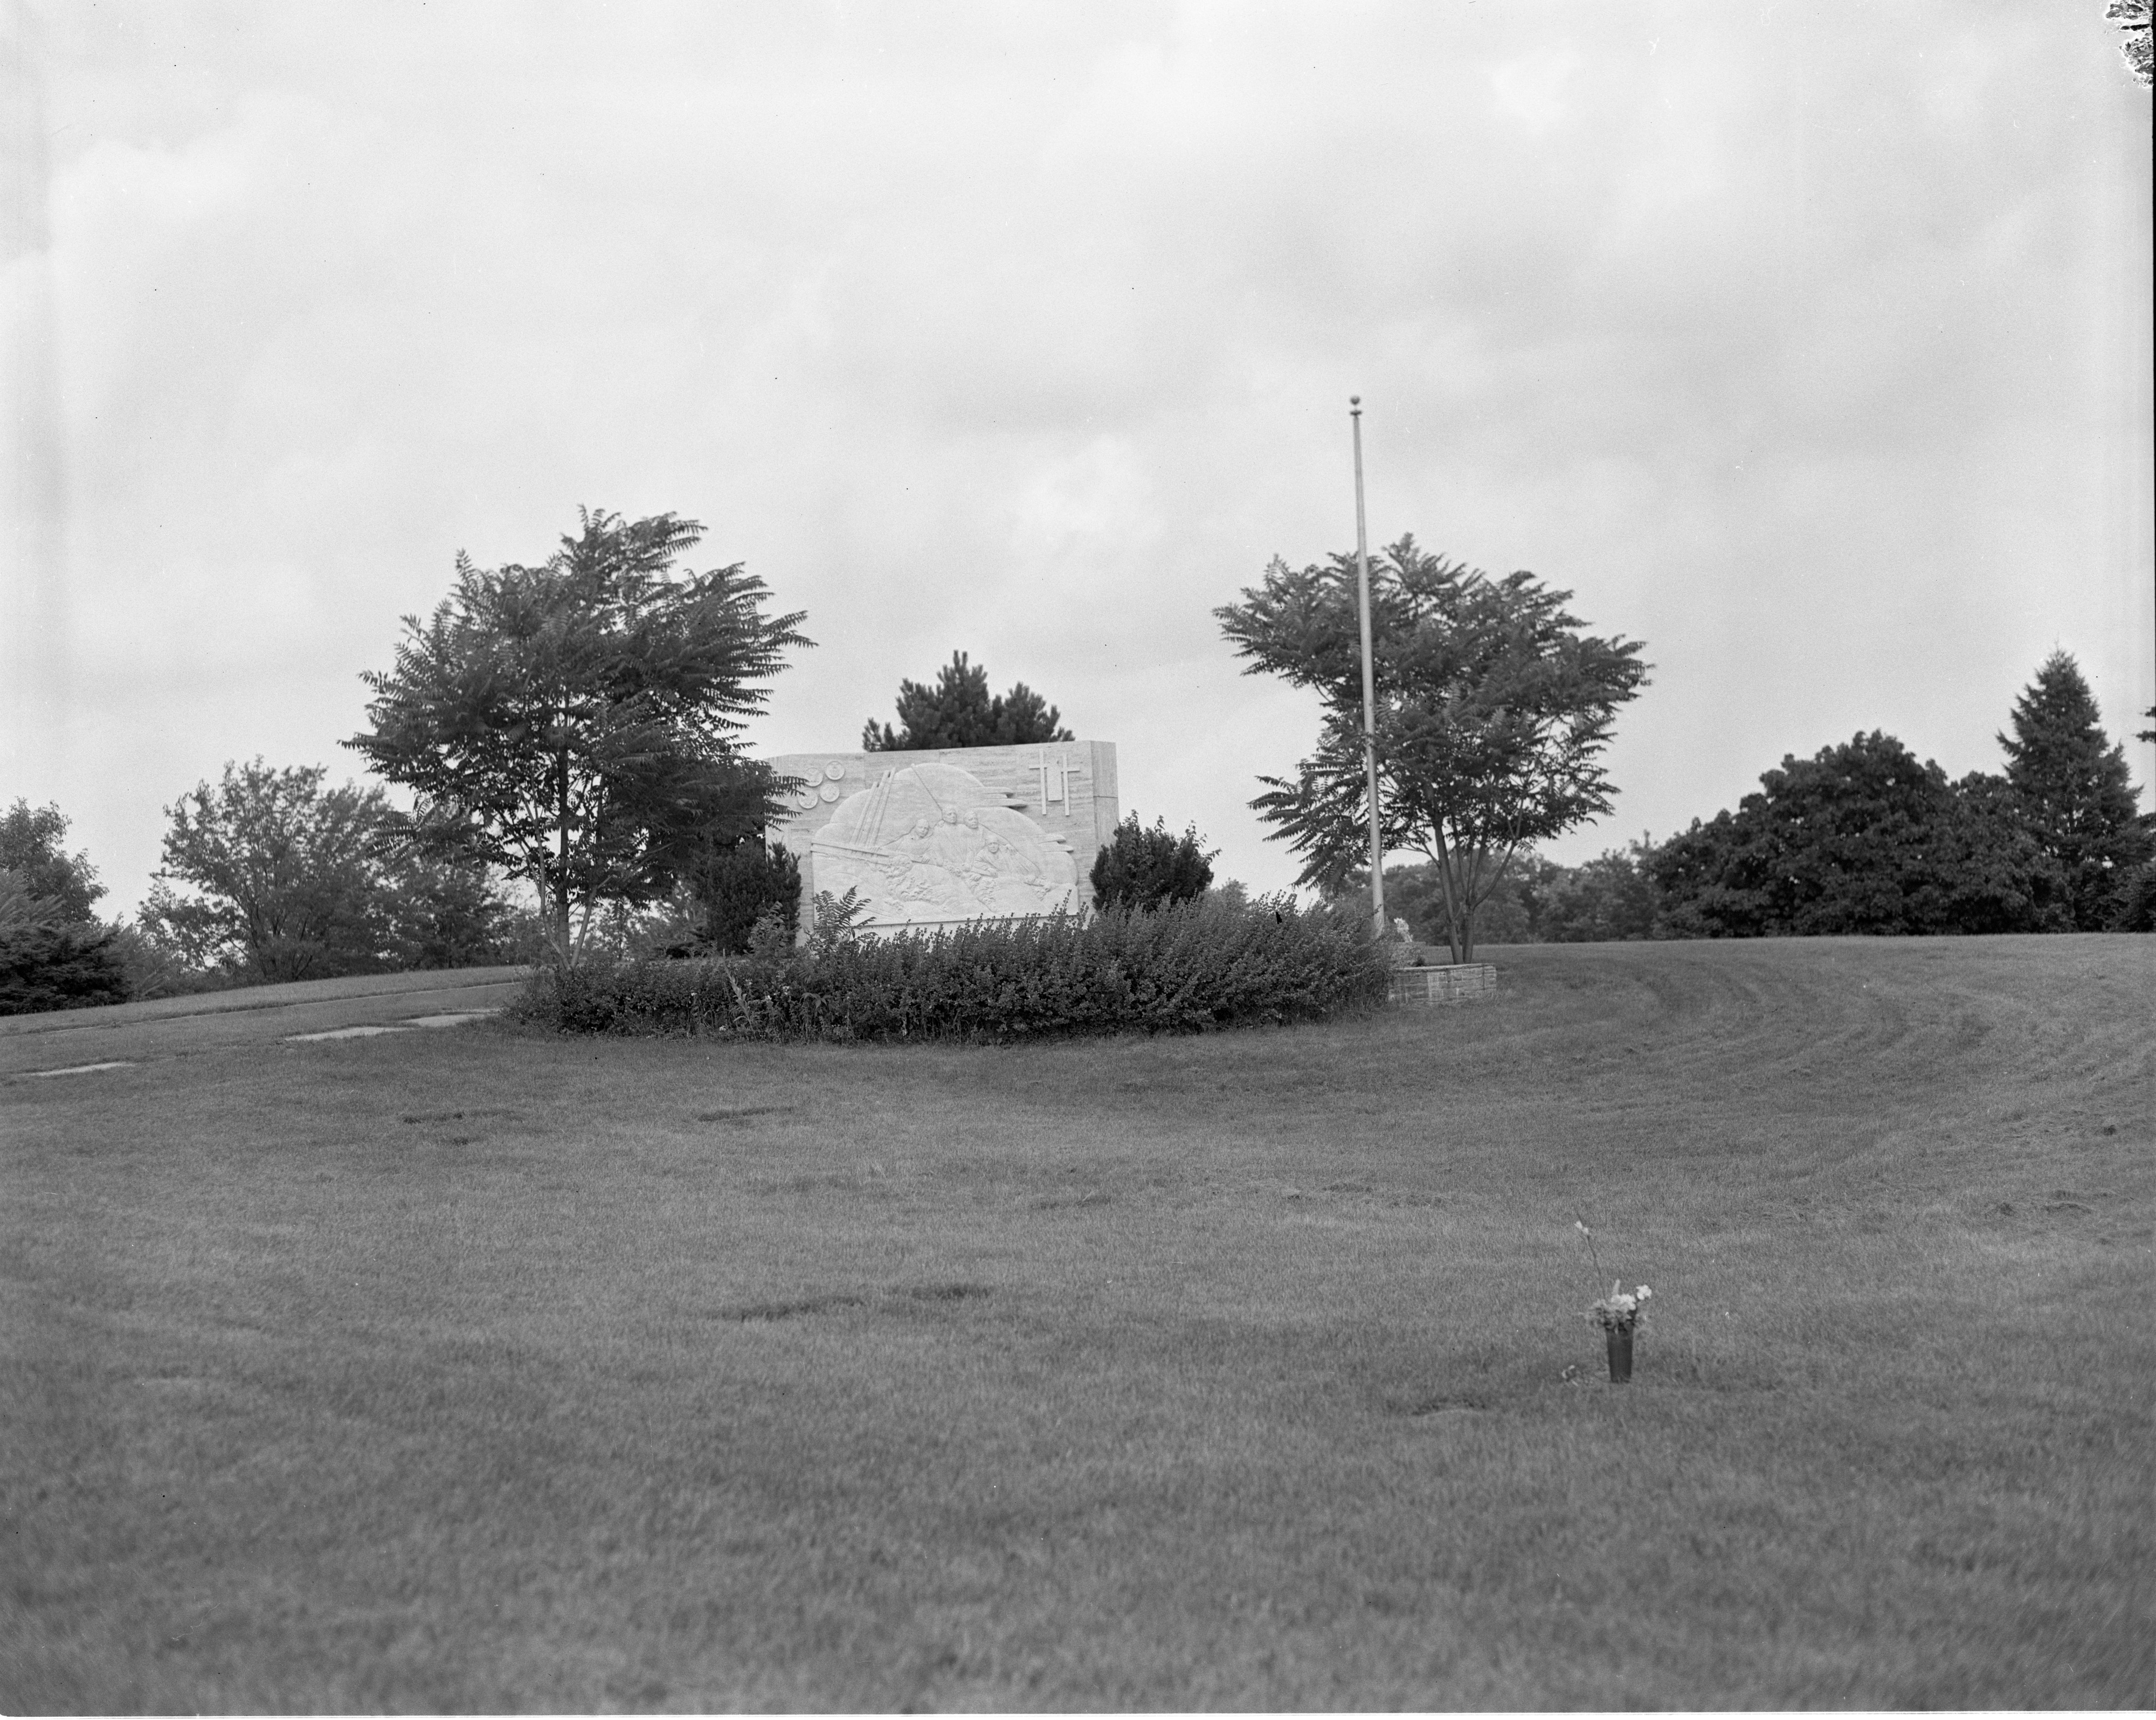 Four Chaplains Monument In Recently Mowed Arborcrest Cemetery, August 1966 image